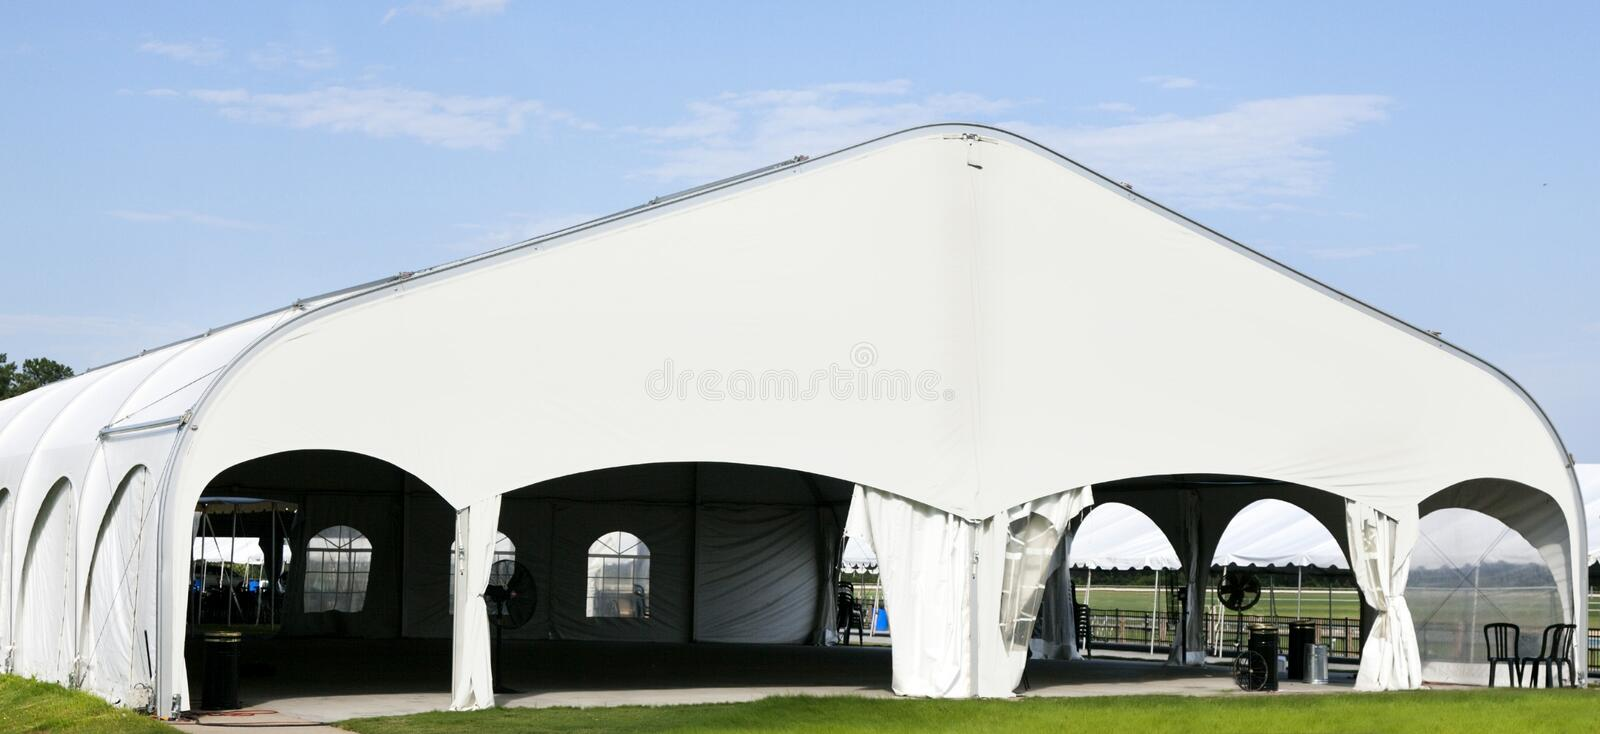 Huge White Event Tent. Tent event tent. Empty. Nobody. Horizontal. Brick and stone patio in foreground. Horizontal stock photography